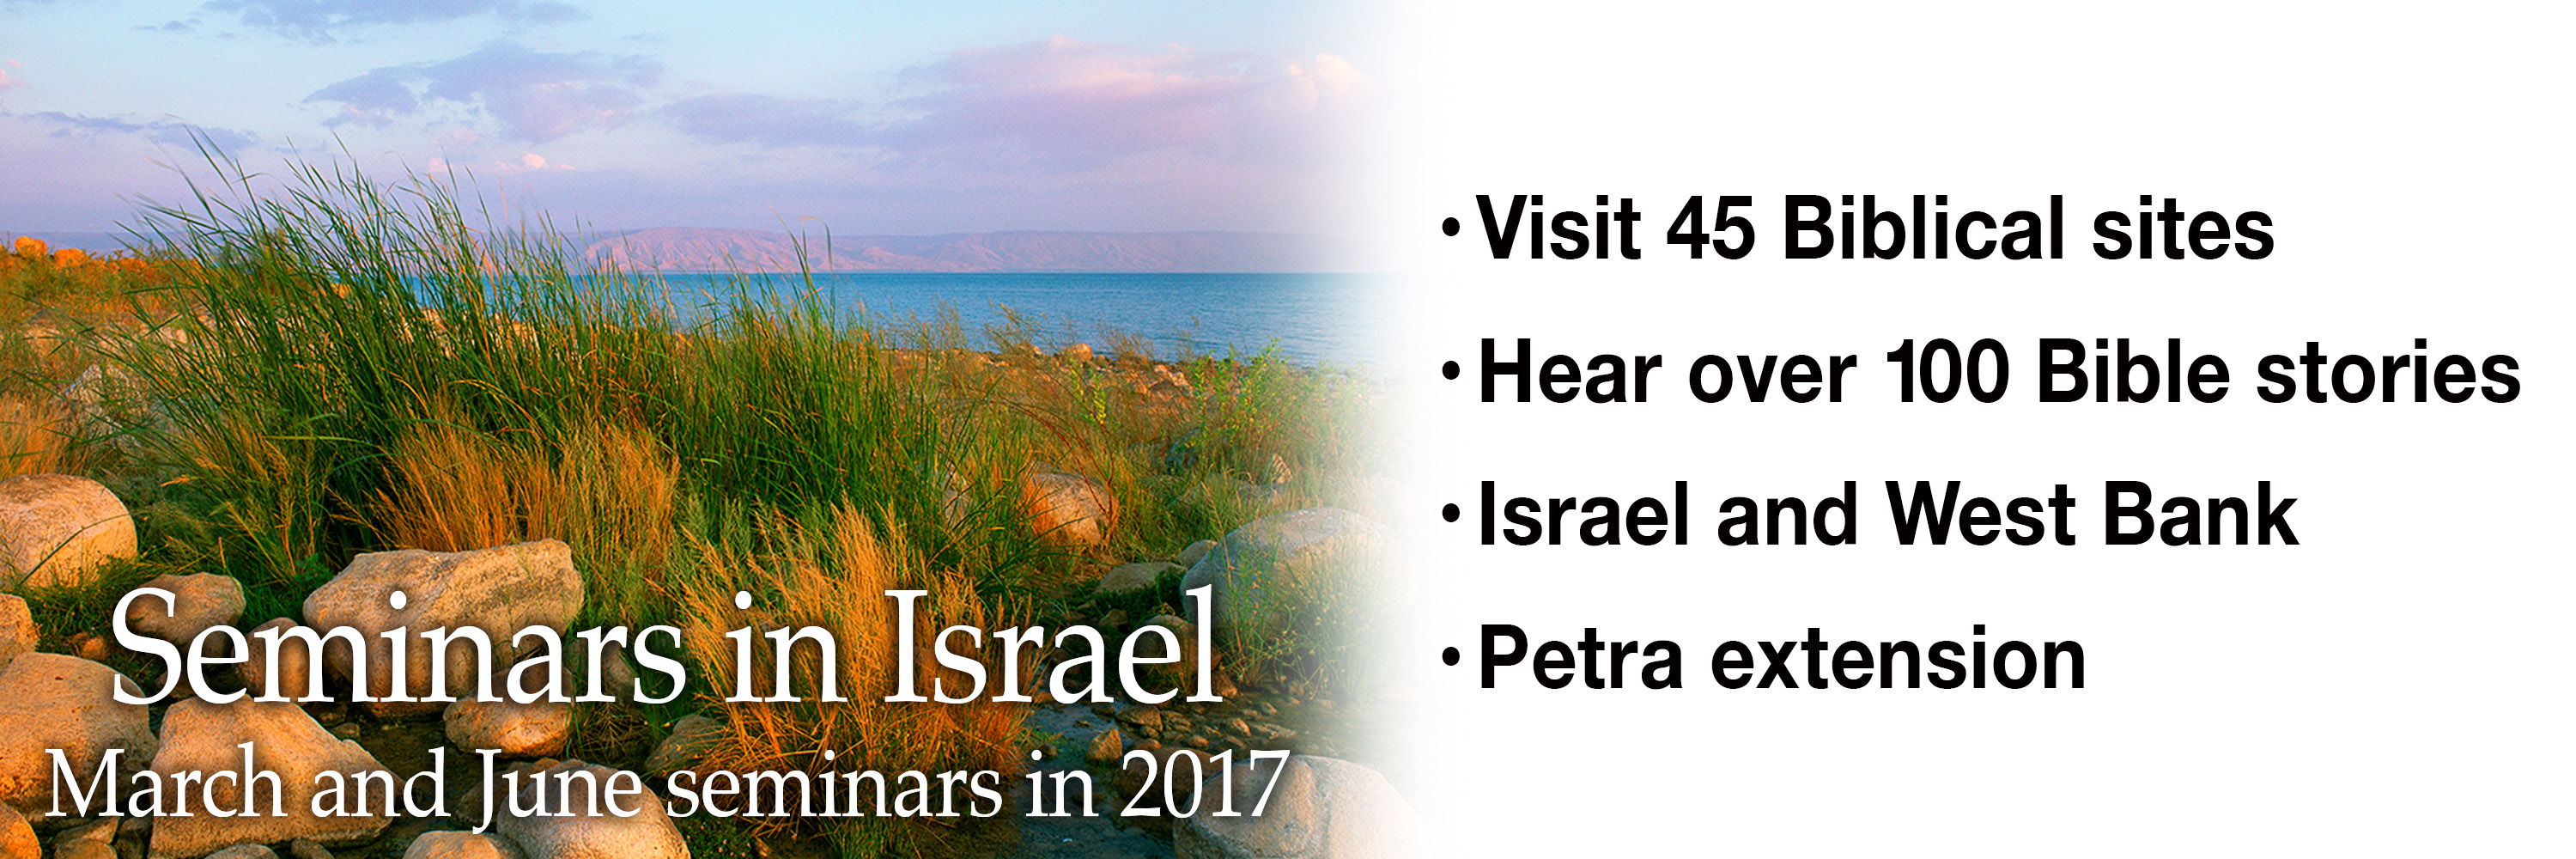 bt_seminars_in_israel_2017